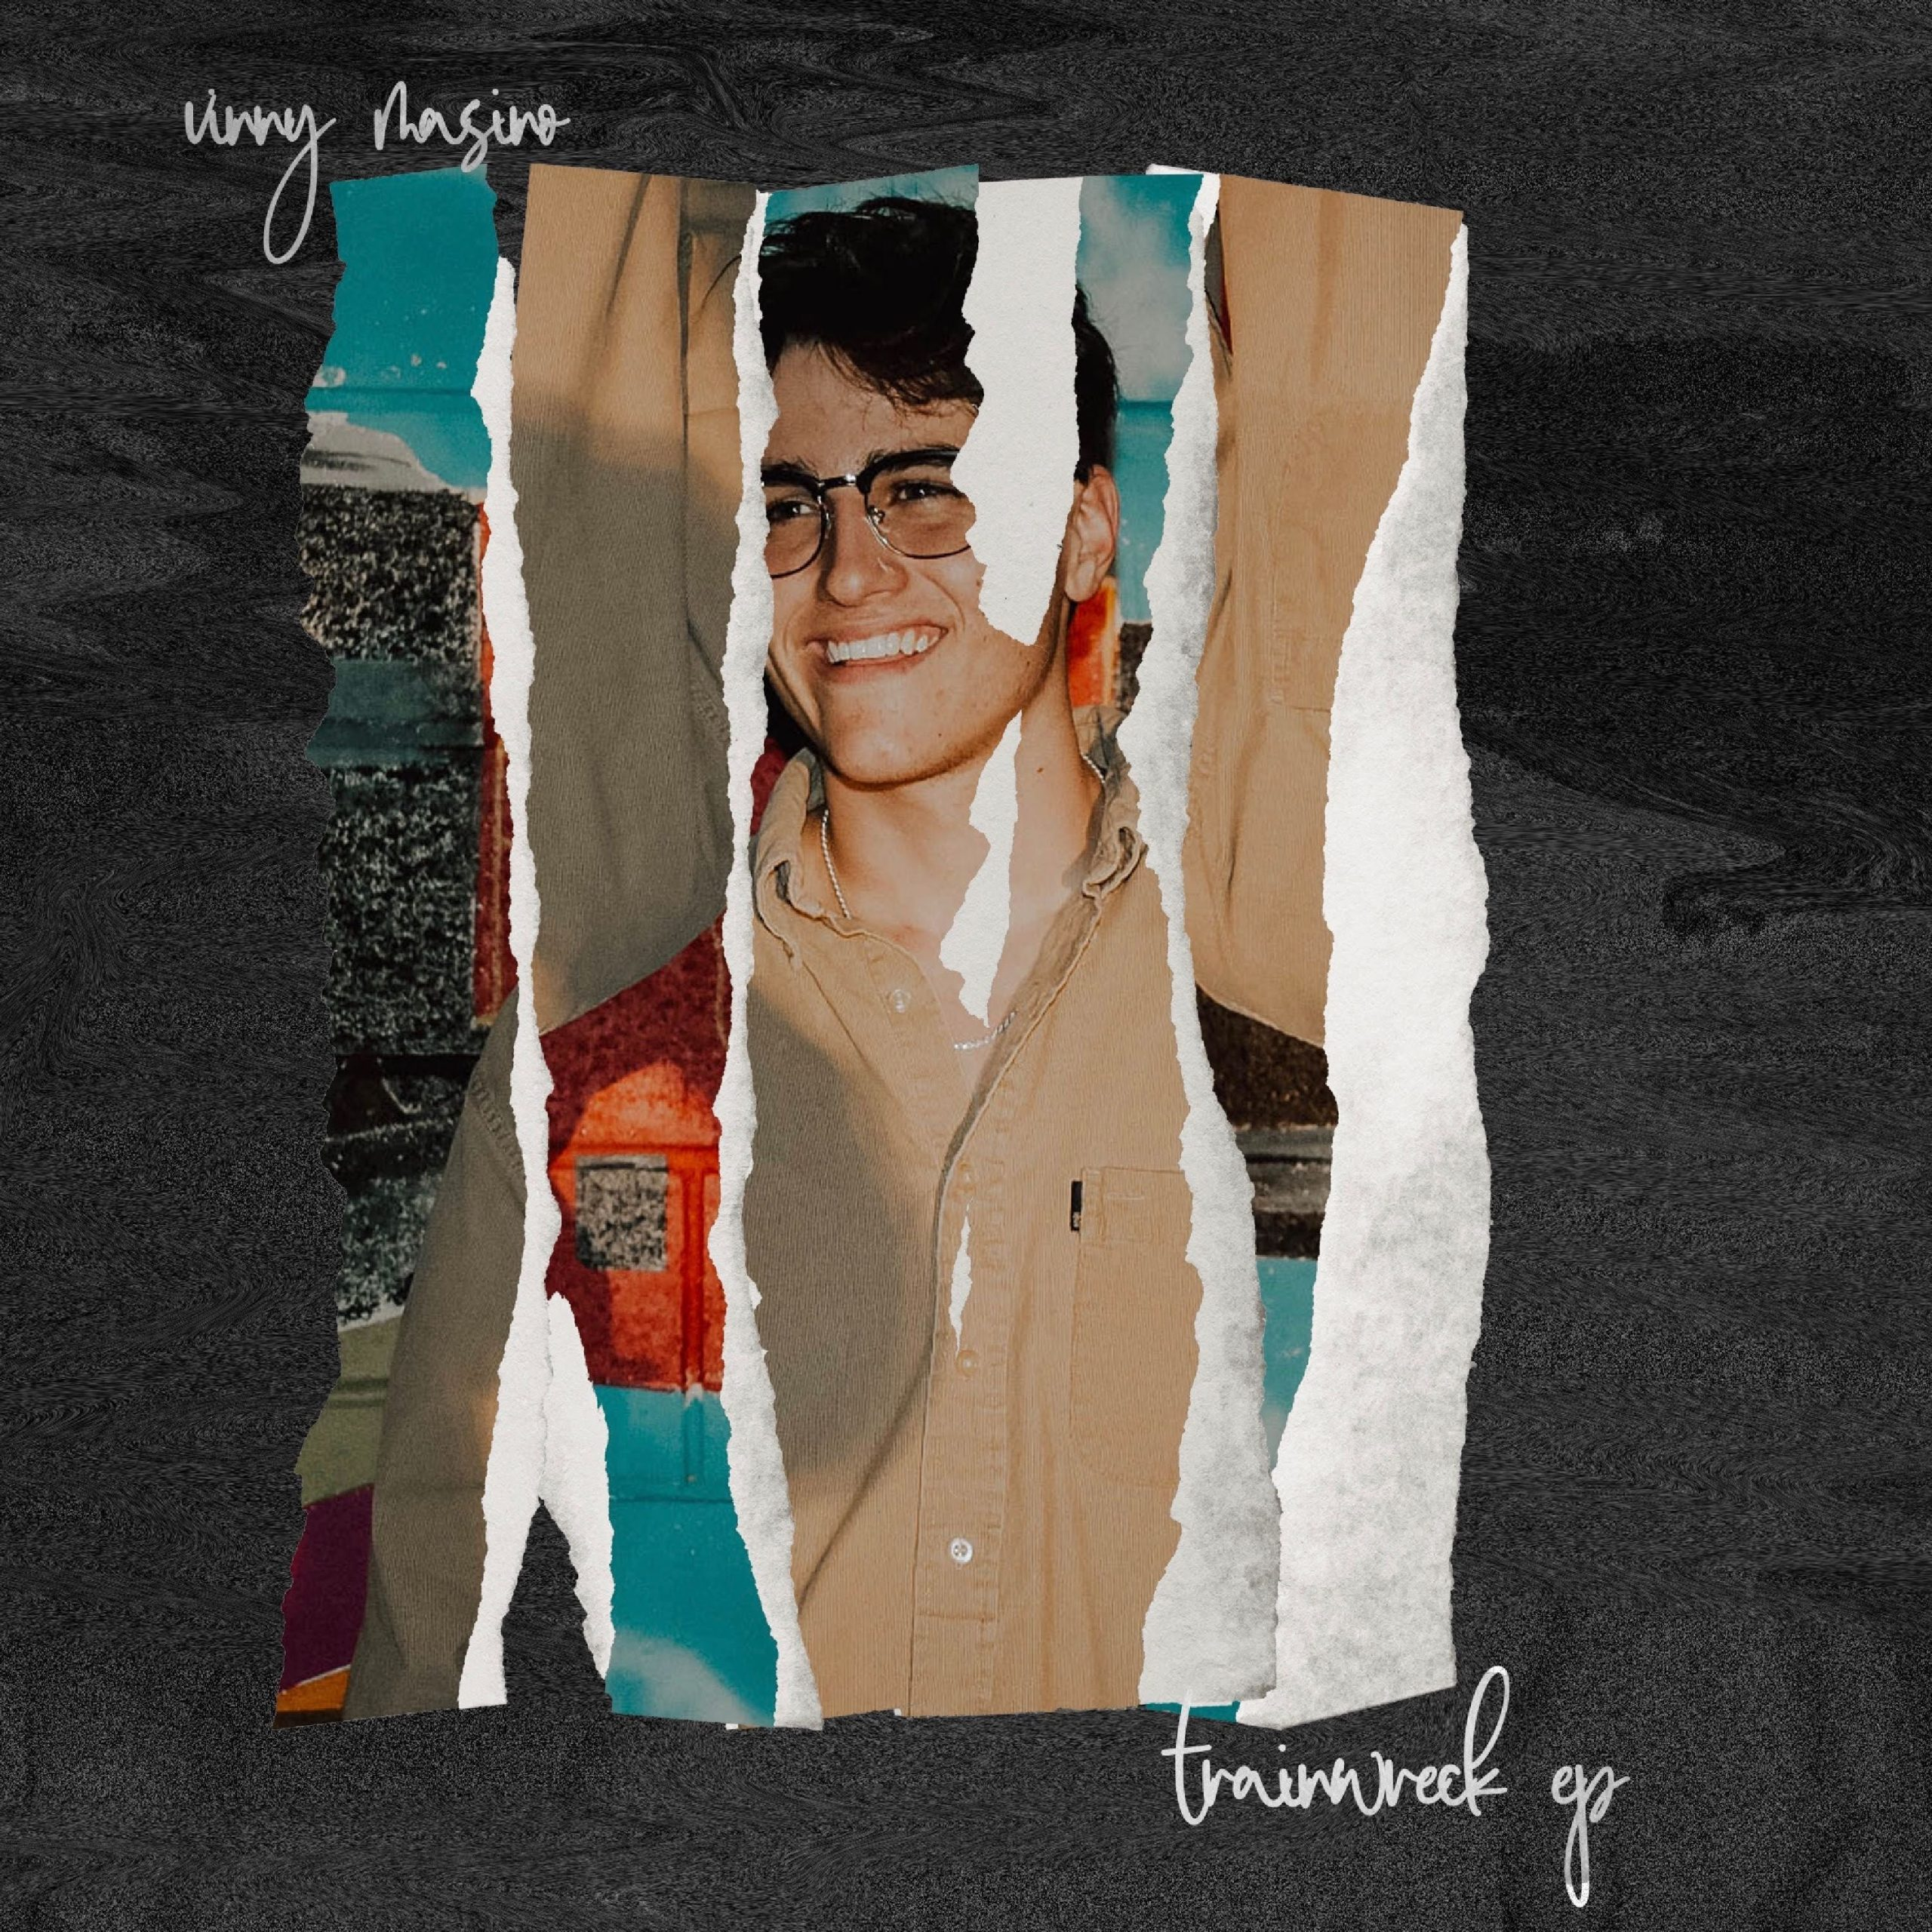 Vinny Masino has used music to work through a rough year in his new EP 'Trainwreck'